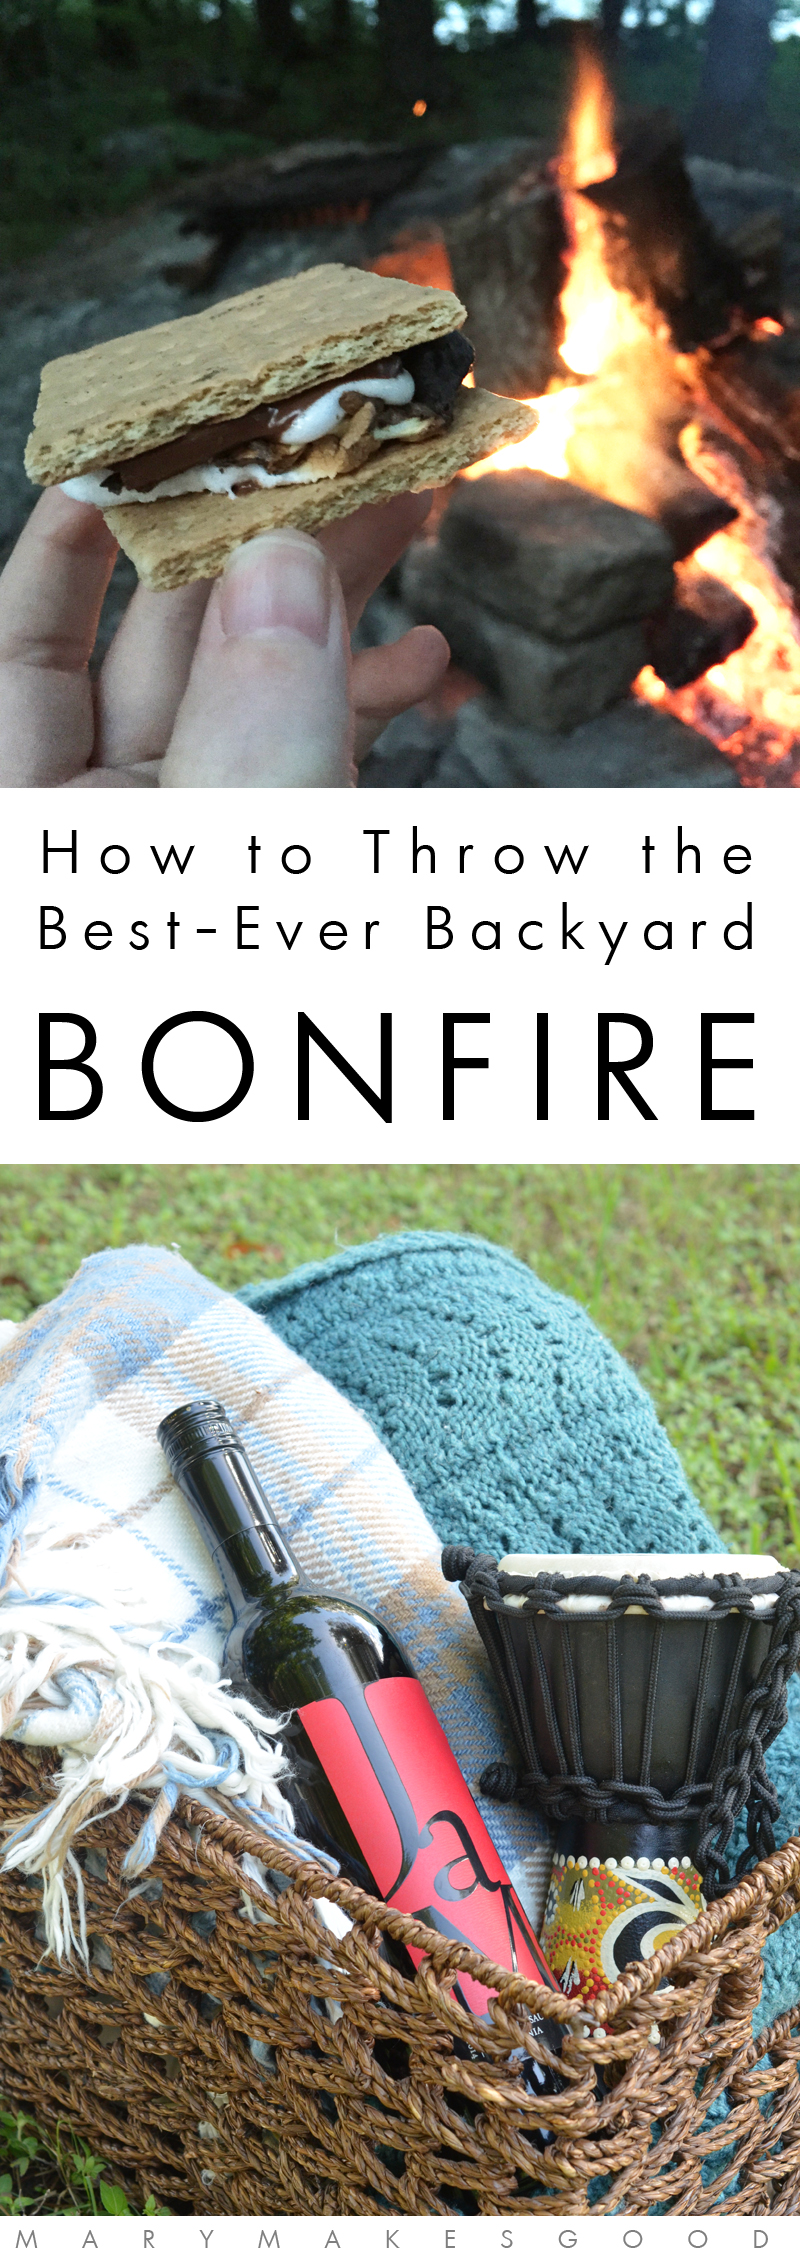 How To Throw The Best Ever Backyard Bonfire With JaM Cabernet